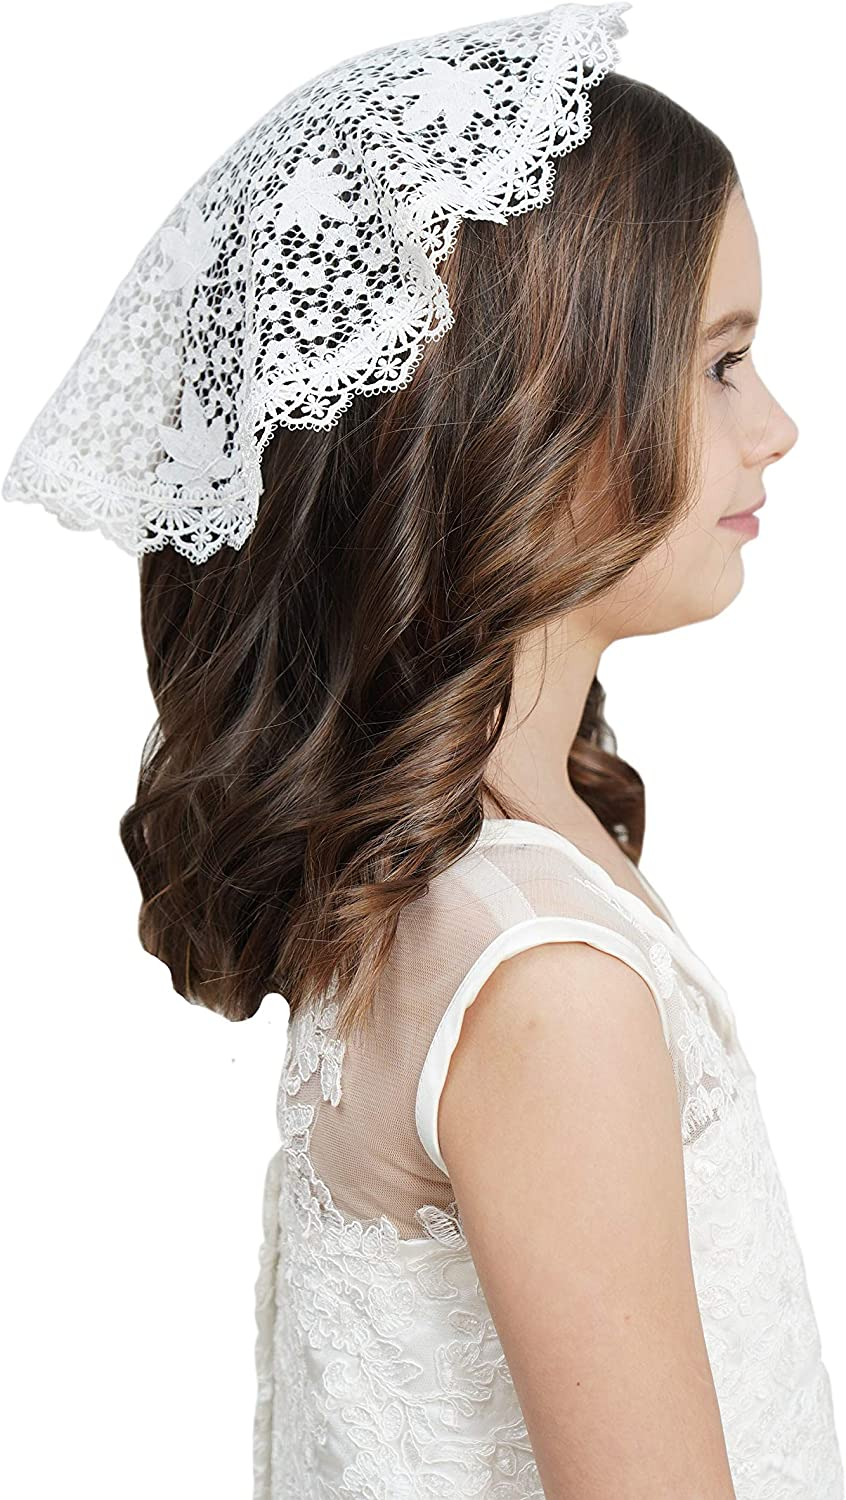 Lace Headcovering for Girls Church Mantilla Veils for Girl Lace Head Cover V87